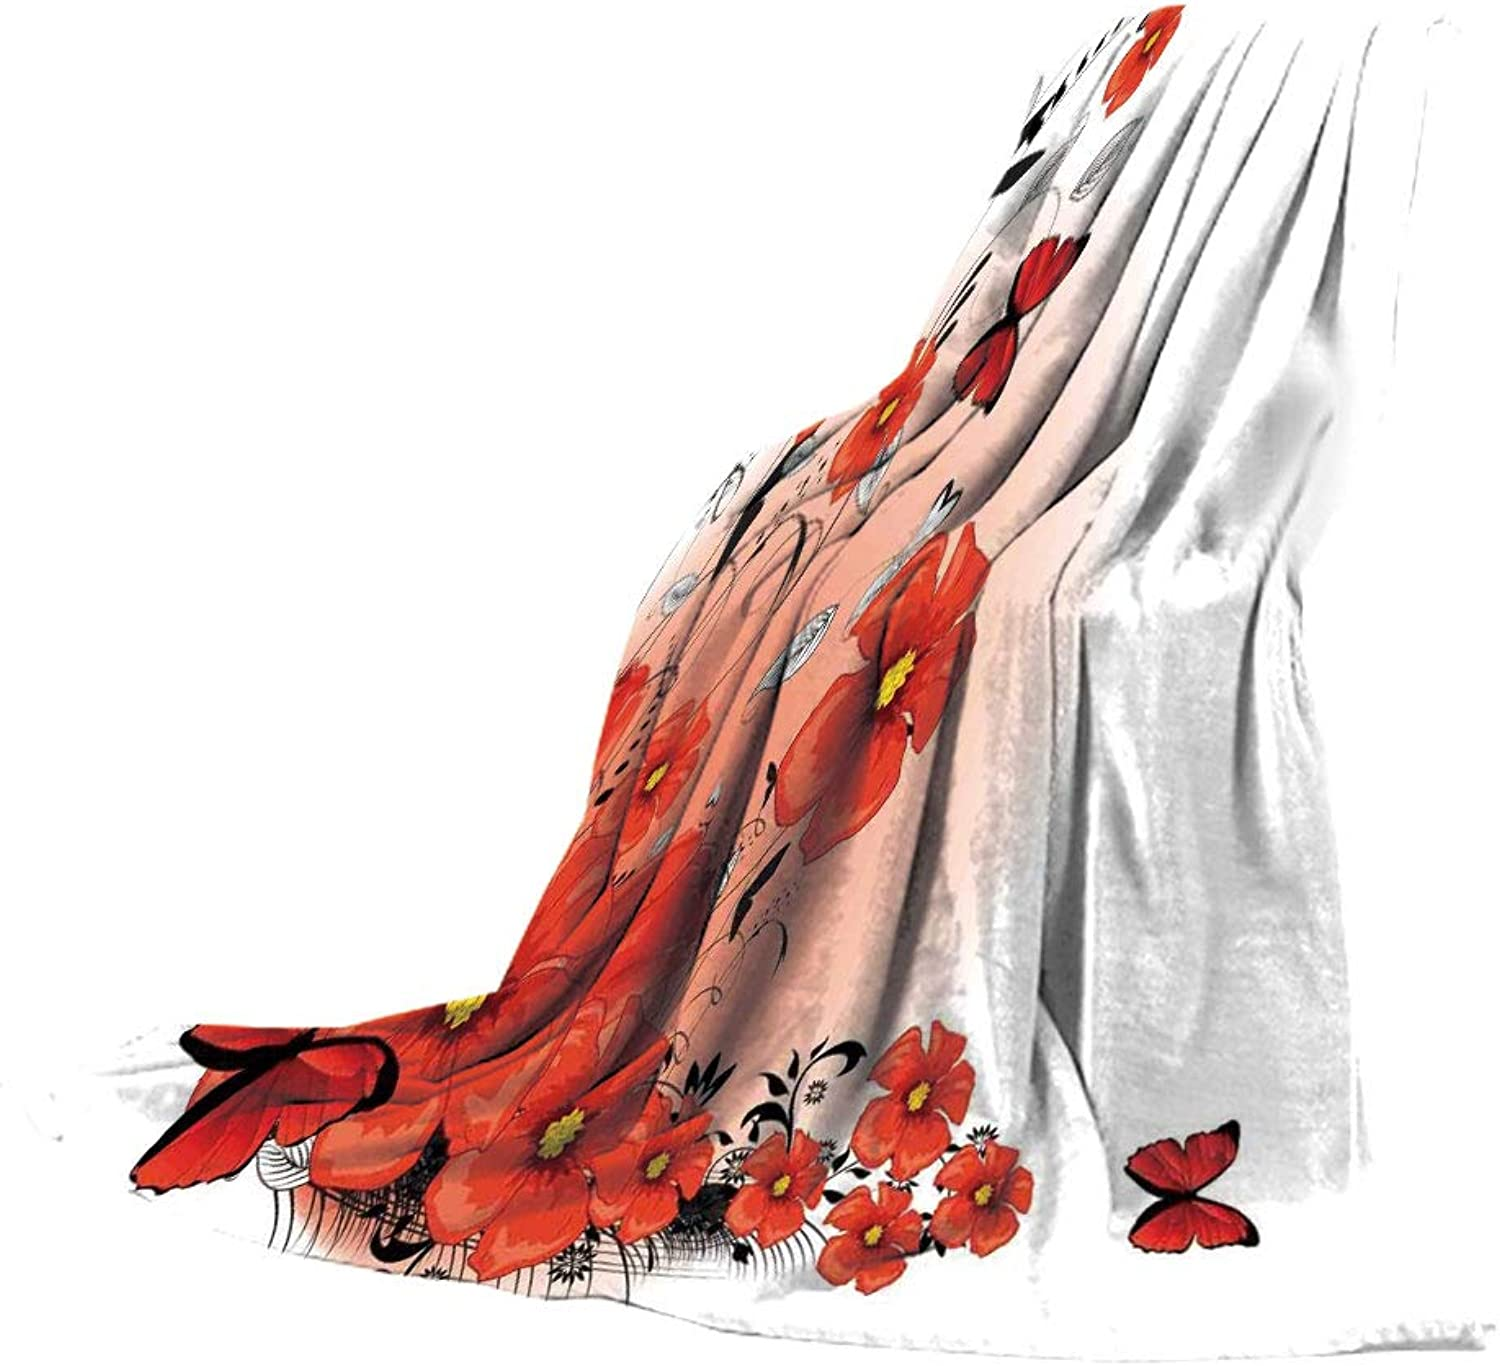 SCOCICI Blanket for Bed Couch Chair Fall Winter Spring Living Room,Poppy,Floral Flash Background with Butterflies Spring Season Hope Inspiration Theme,Red White Black,59.06  W x 86.62  H